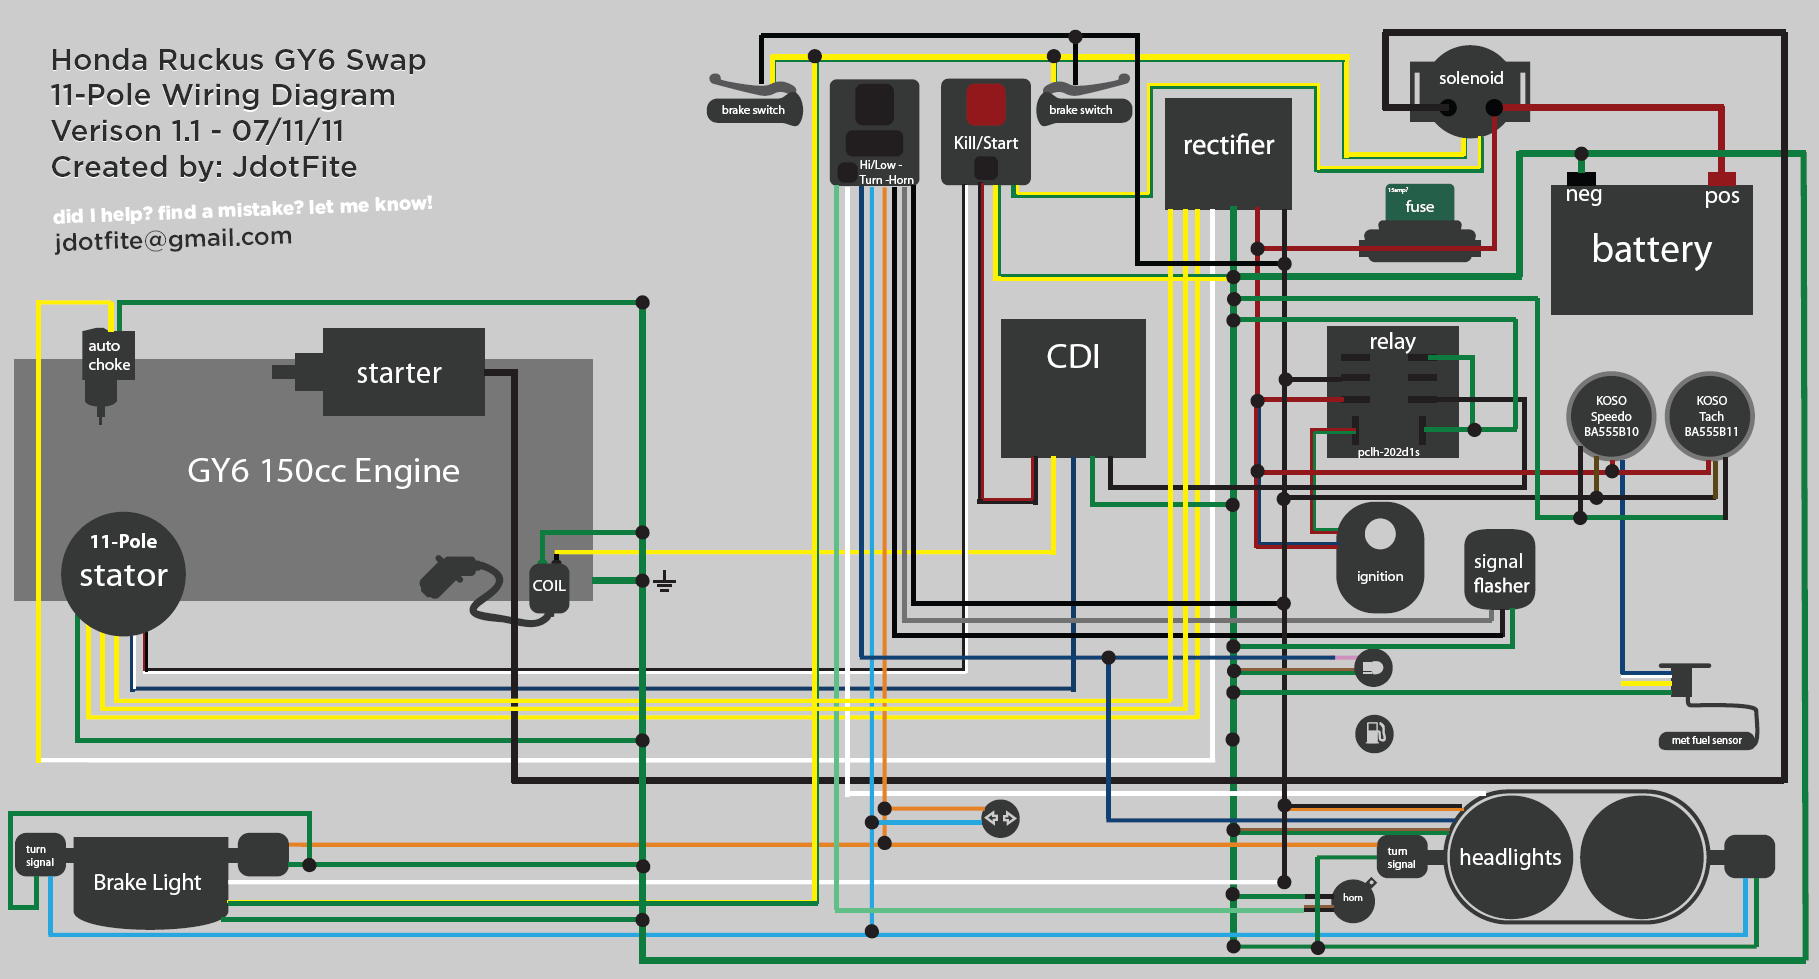 hight resolution of ruckus gy6 swap wiring diagram wiring diagram for a gy6 swap with honda ruckus